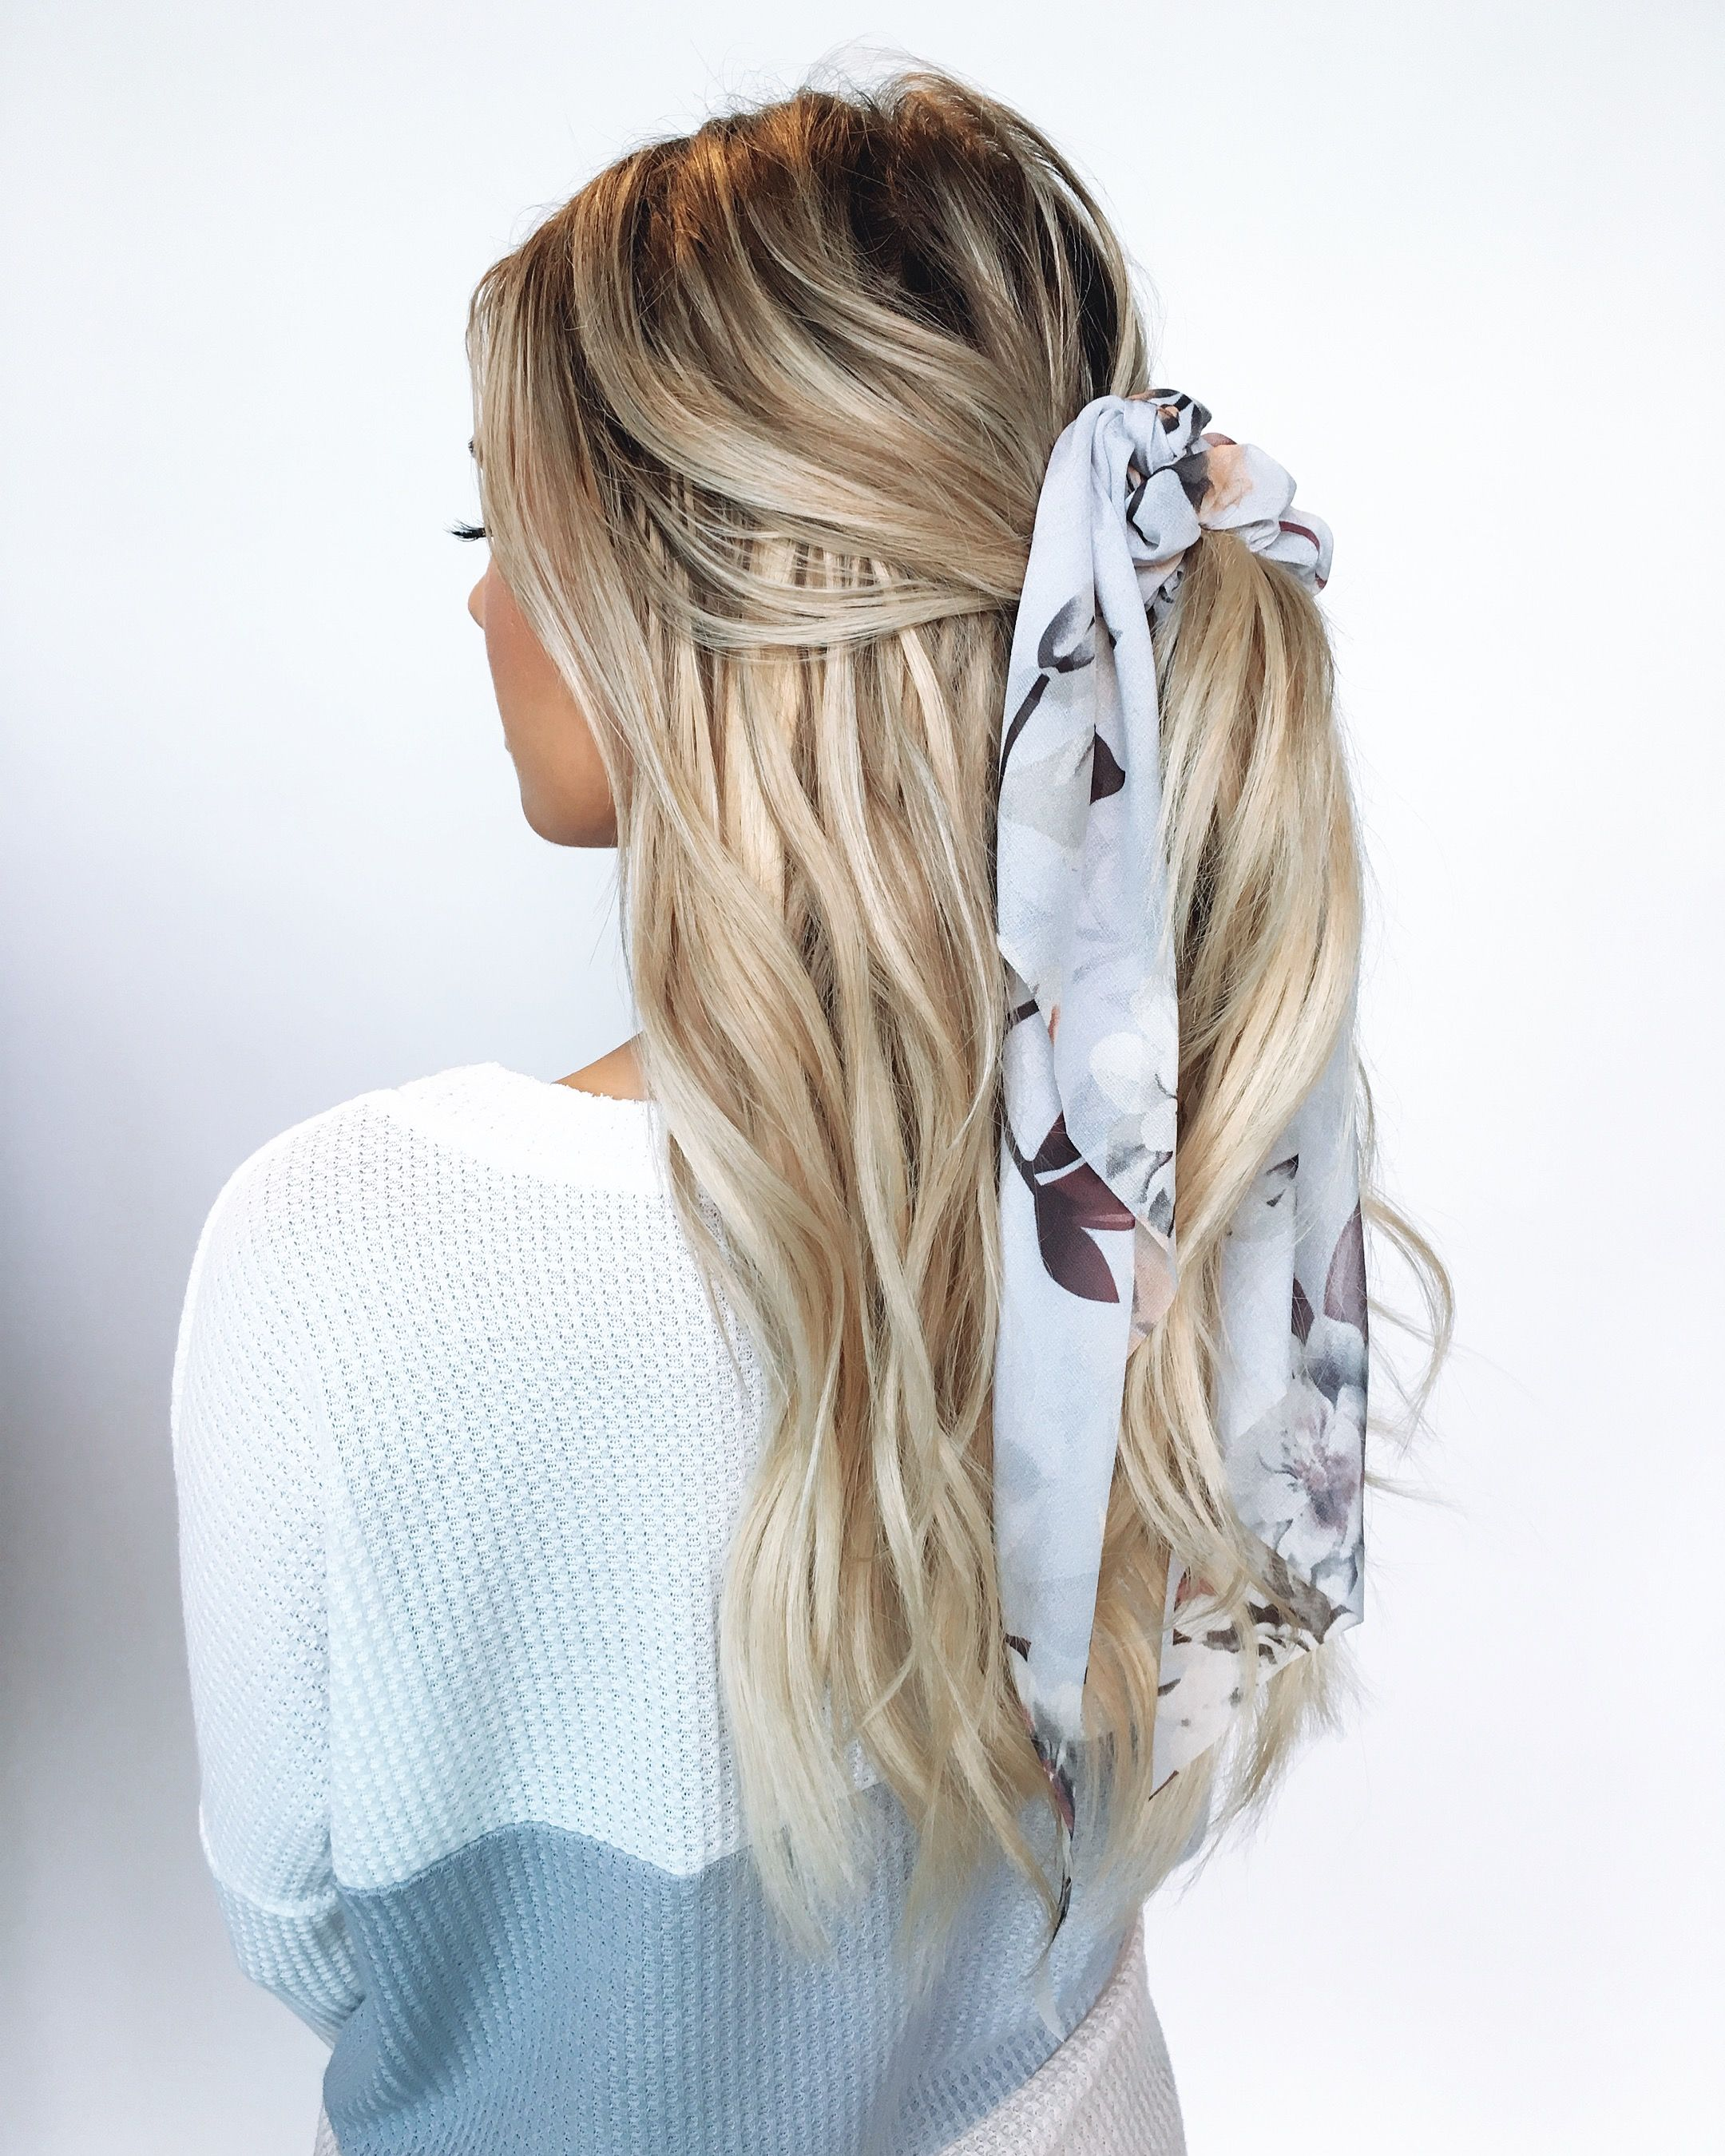 Everyone S Fave Hair Trend This Spring And Summer Scarf Hairstyles Hair Styles Silk Scarf Hair